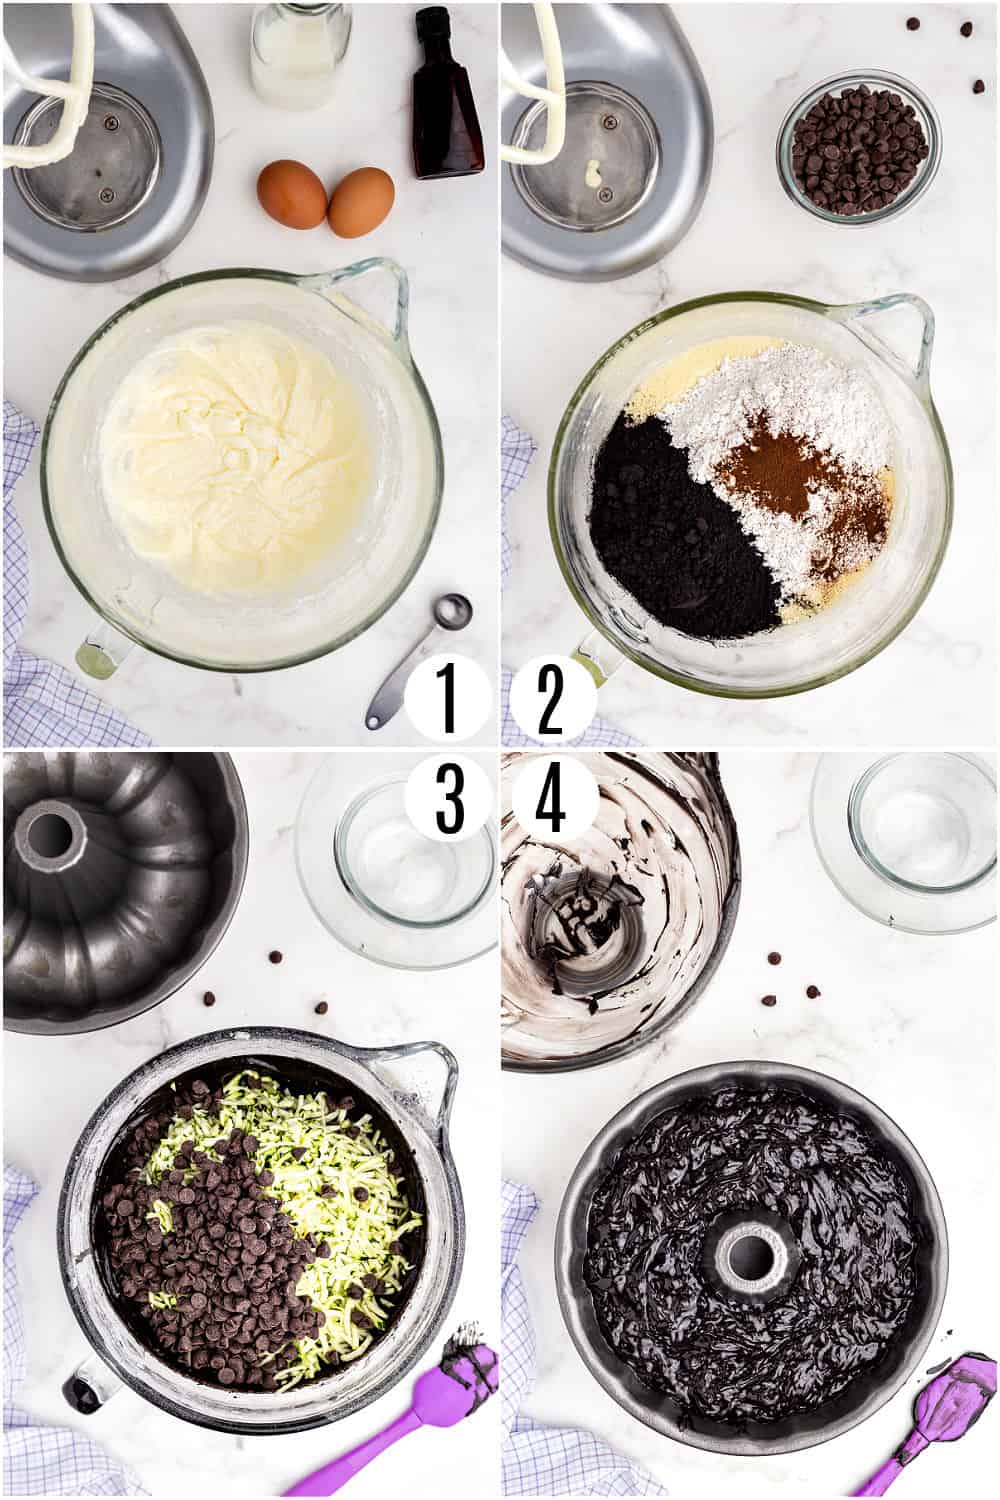 Step by step photos showing how to make chocolate cake witth zucchini.